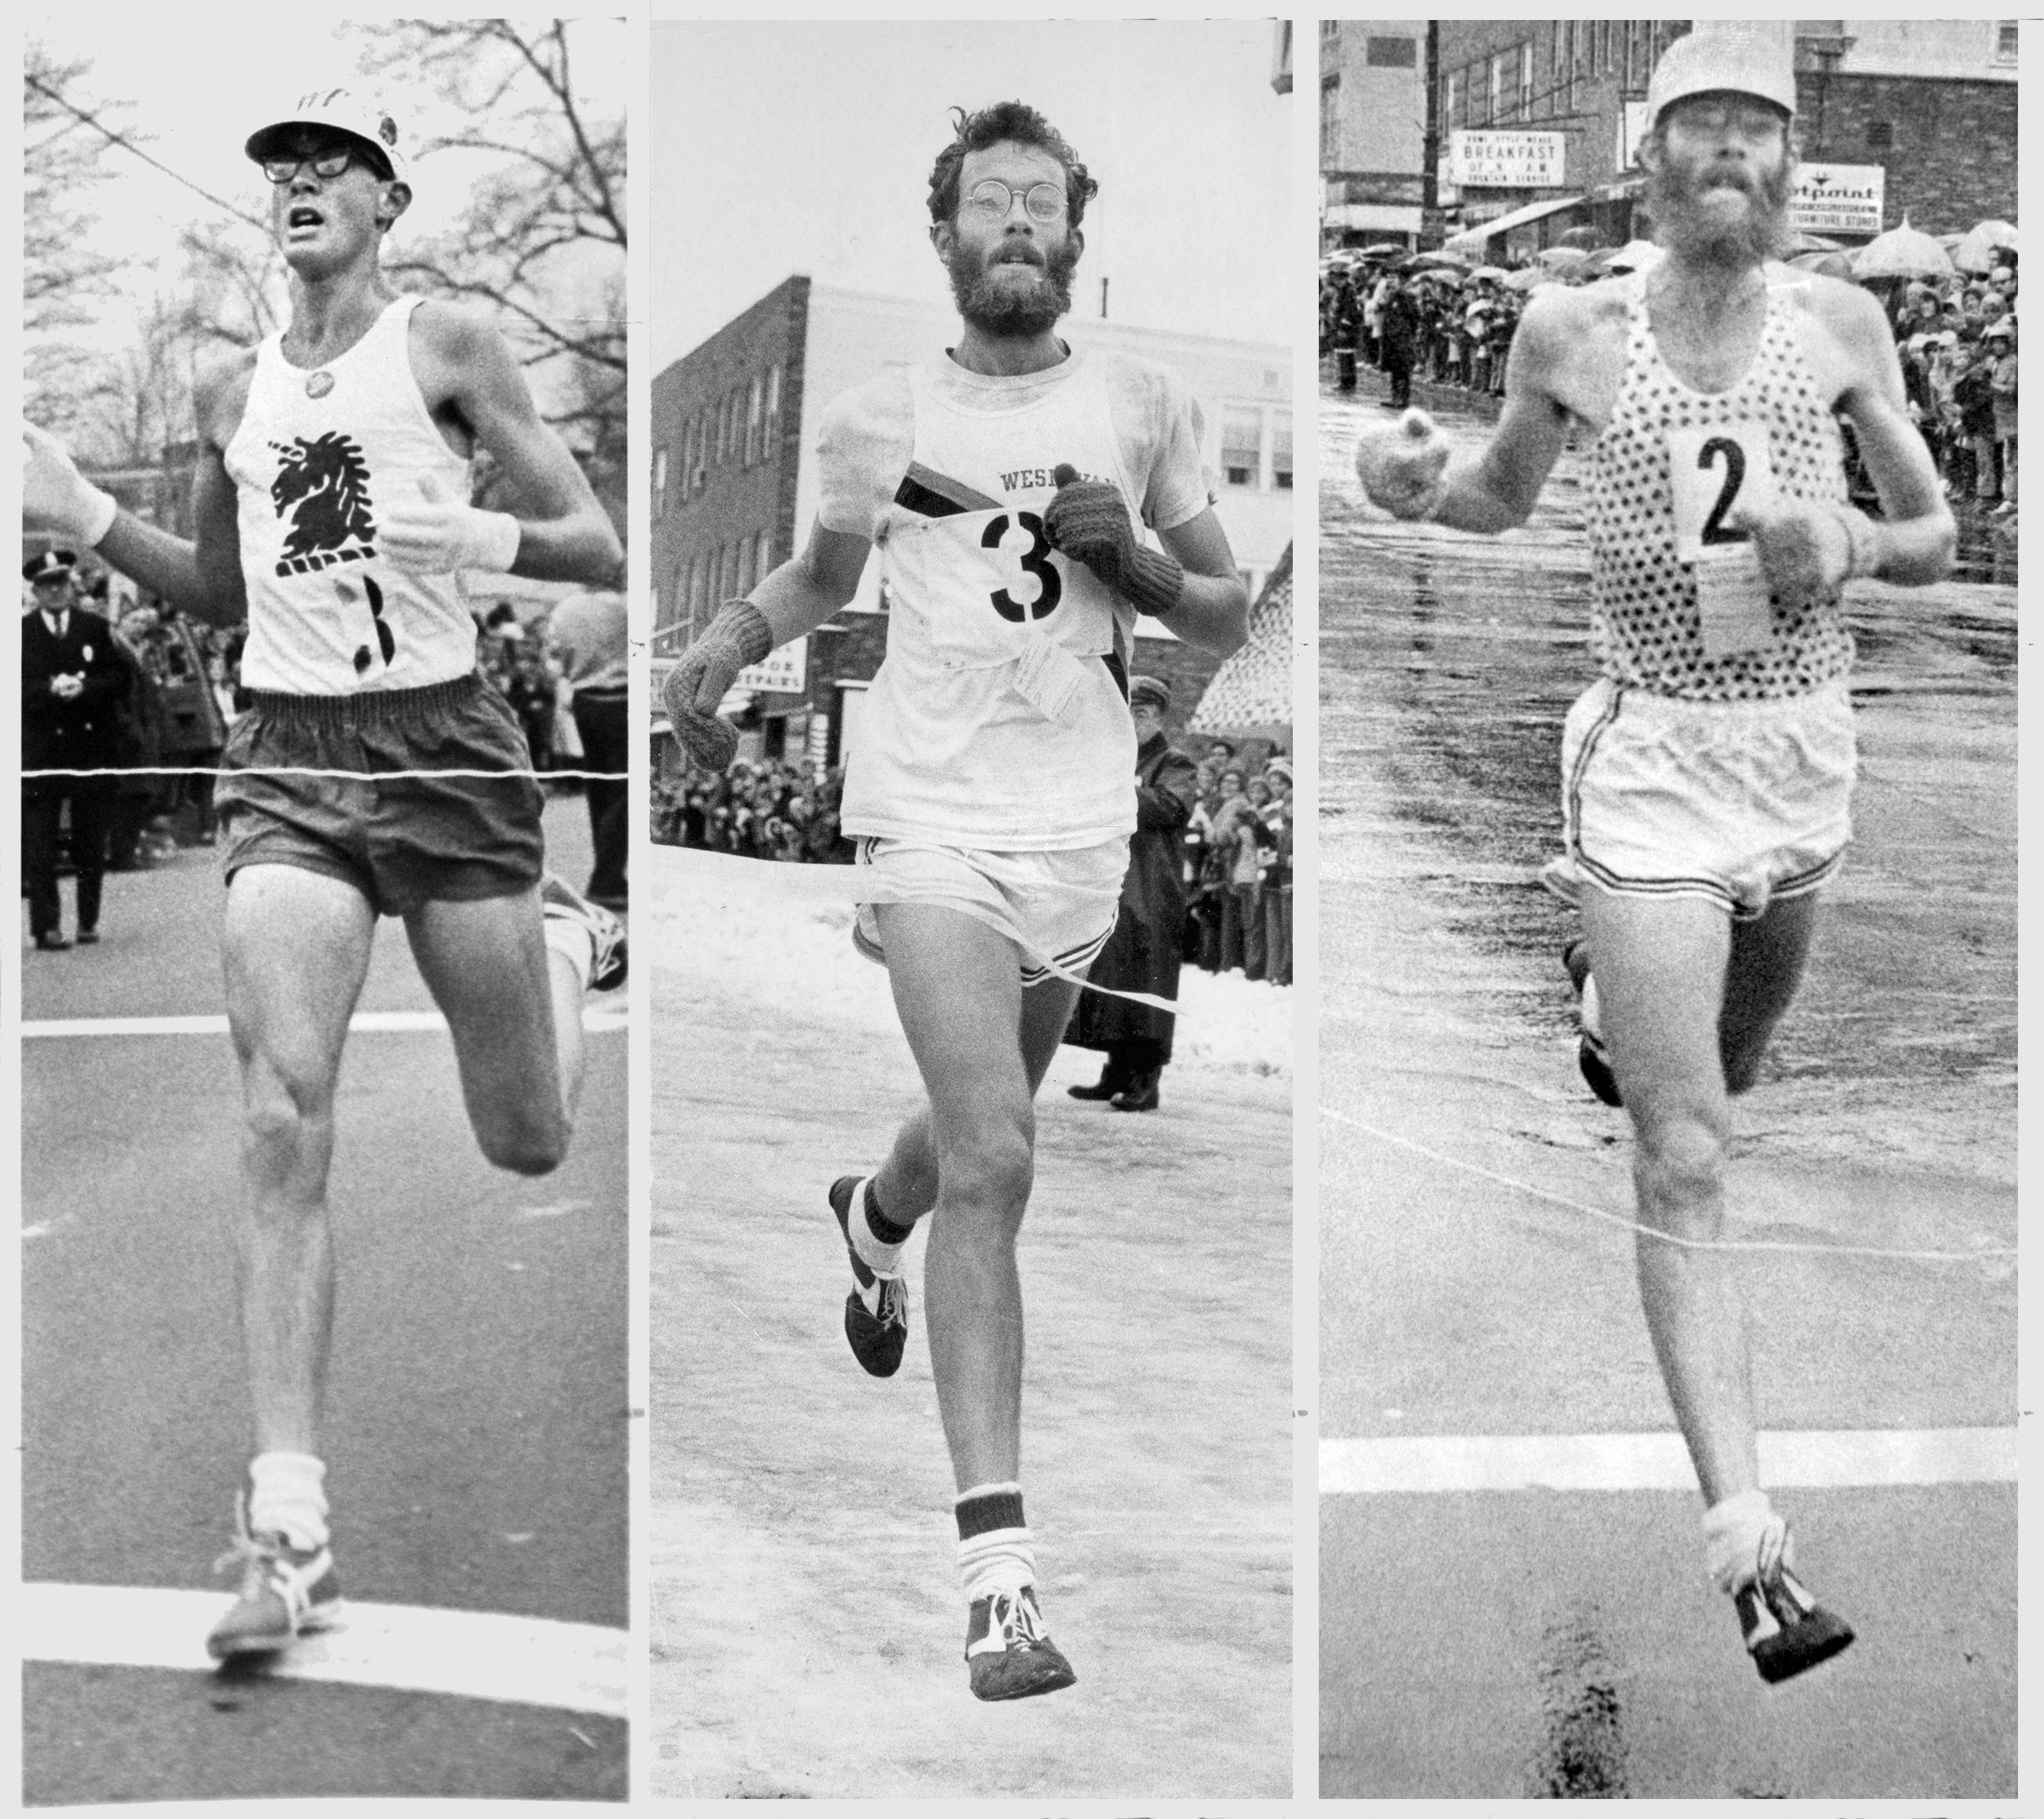 Burfoot winning MRR in 1968, 1971 and 1975